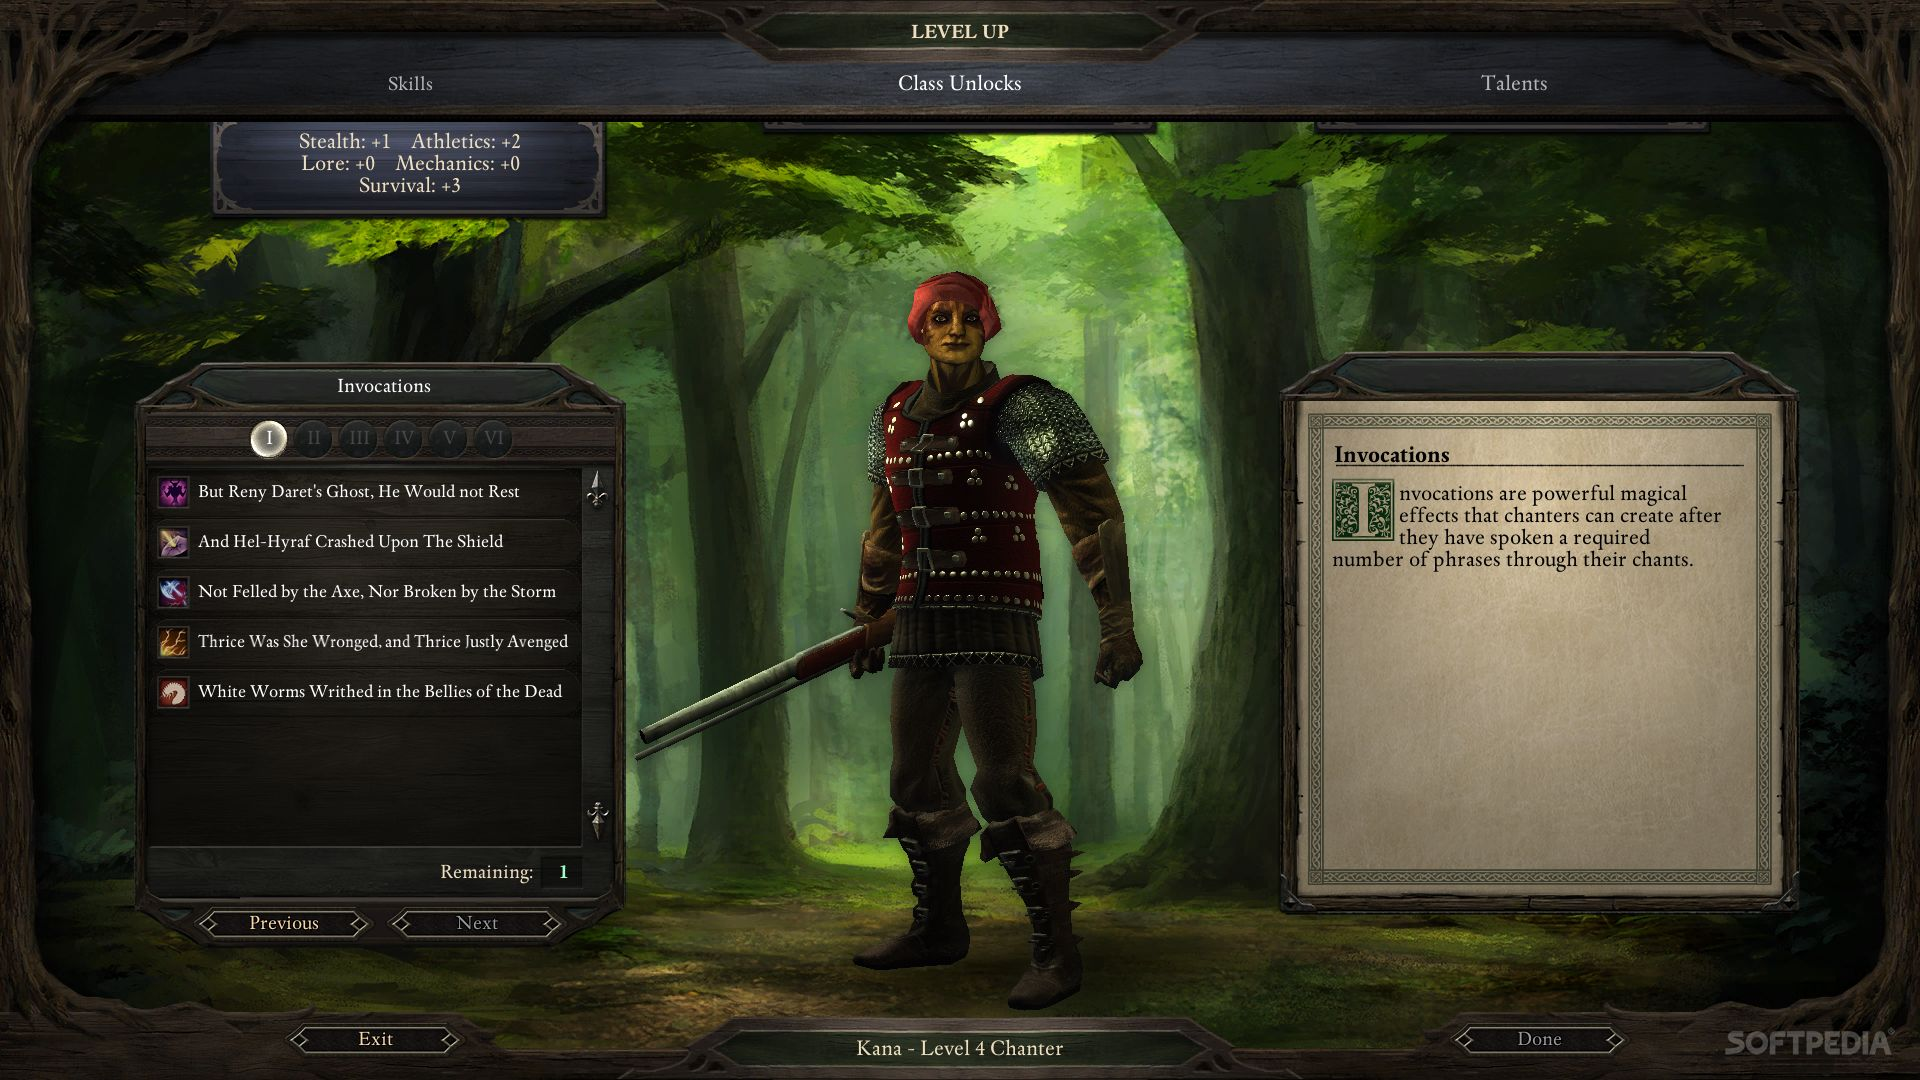 Pillars Of Eternity Background: Classes, Races, Backgrounds